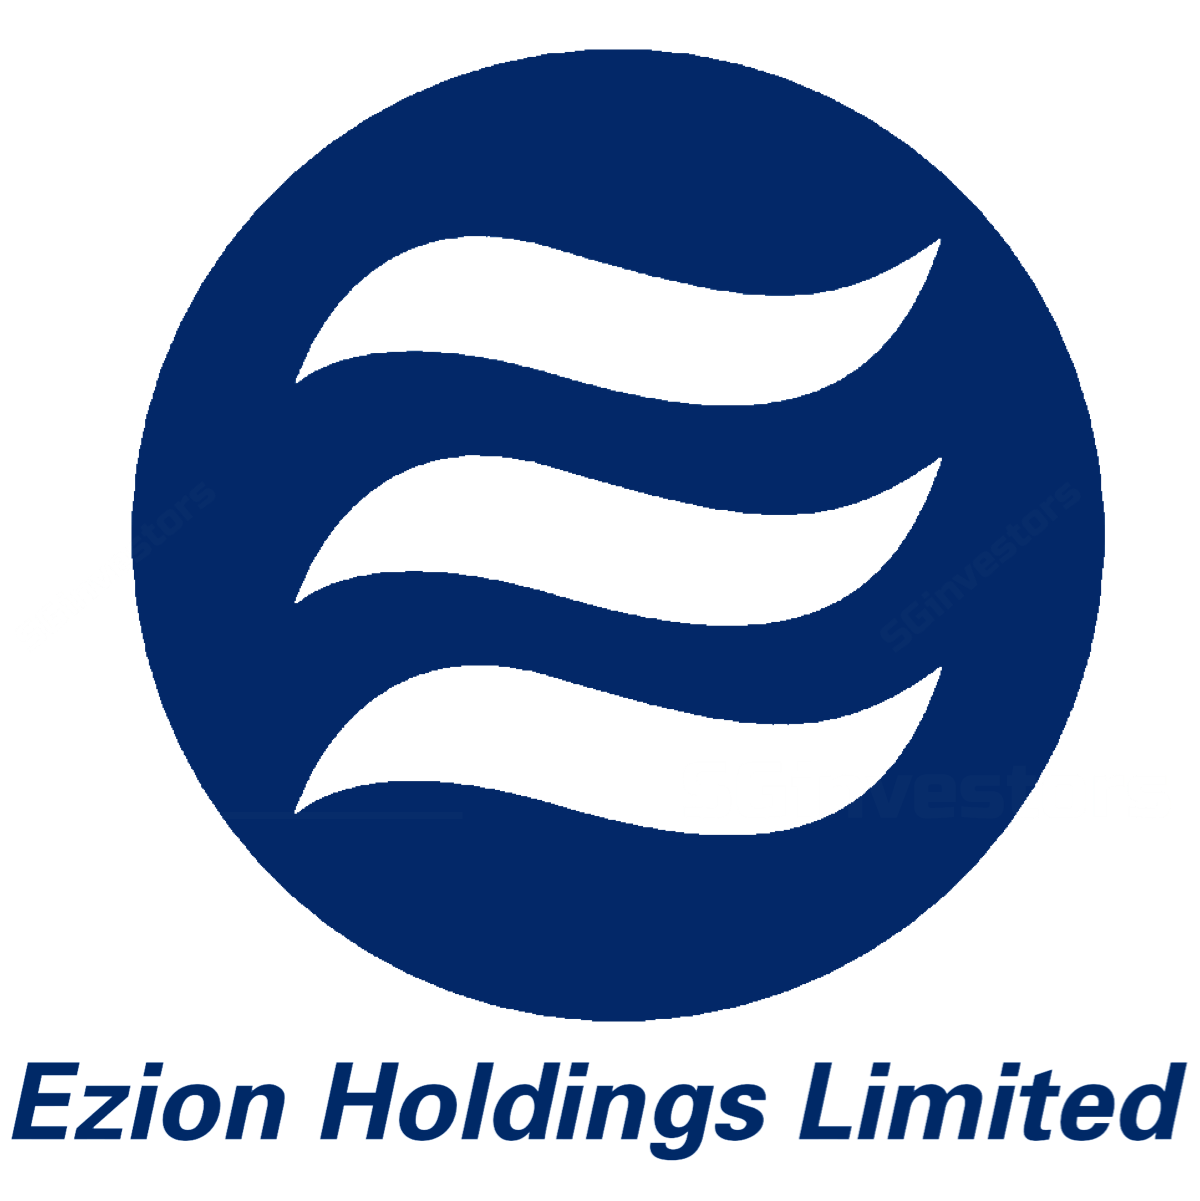 Ezion Holdings - OCBC Investment 2017-02-23: GARNERS BANK SUPPORT